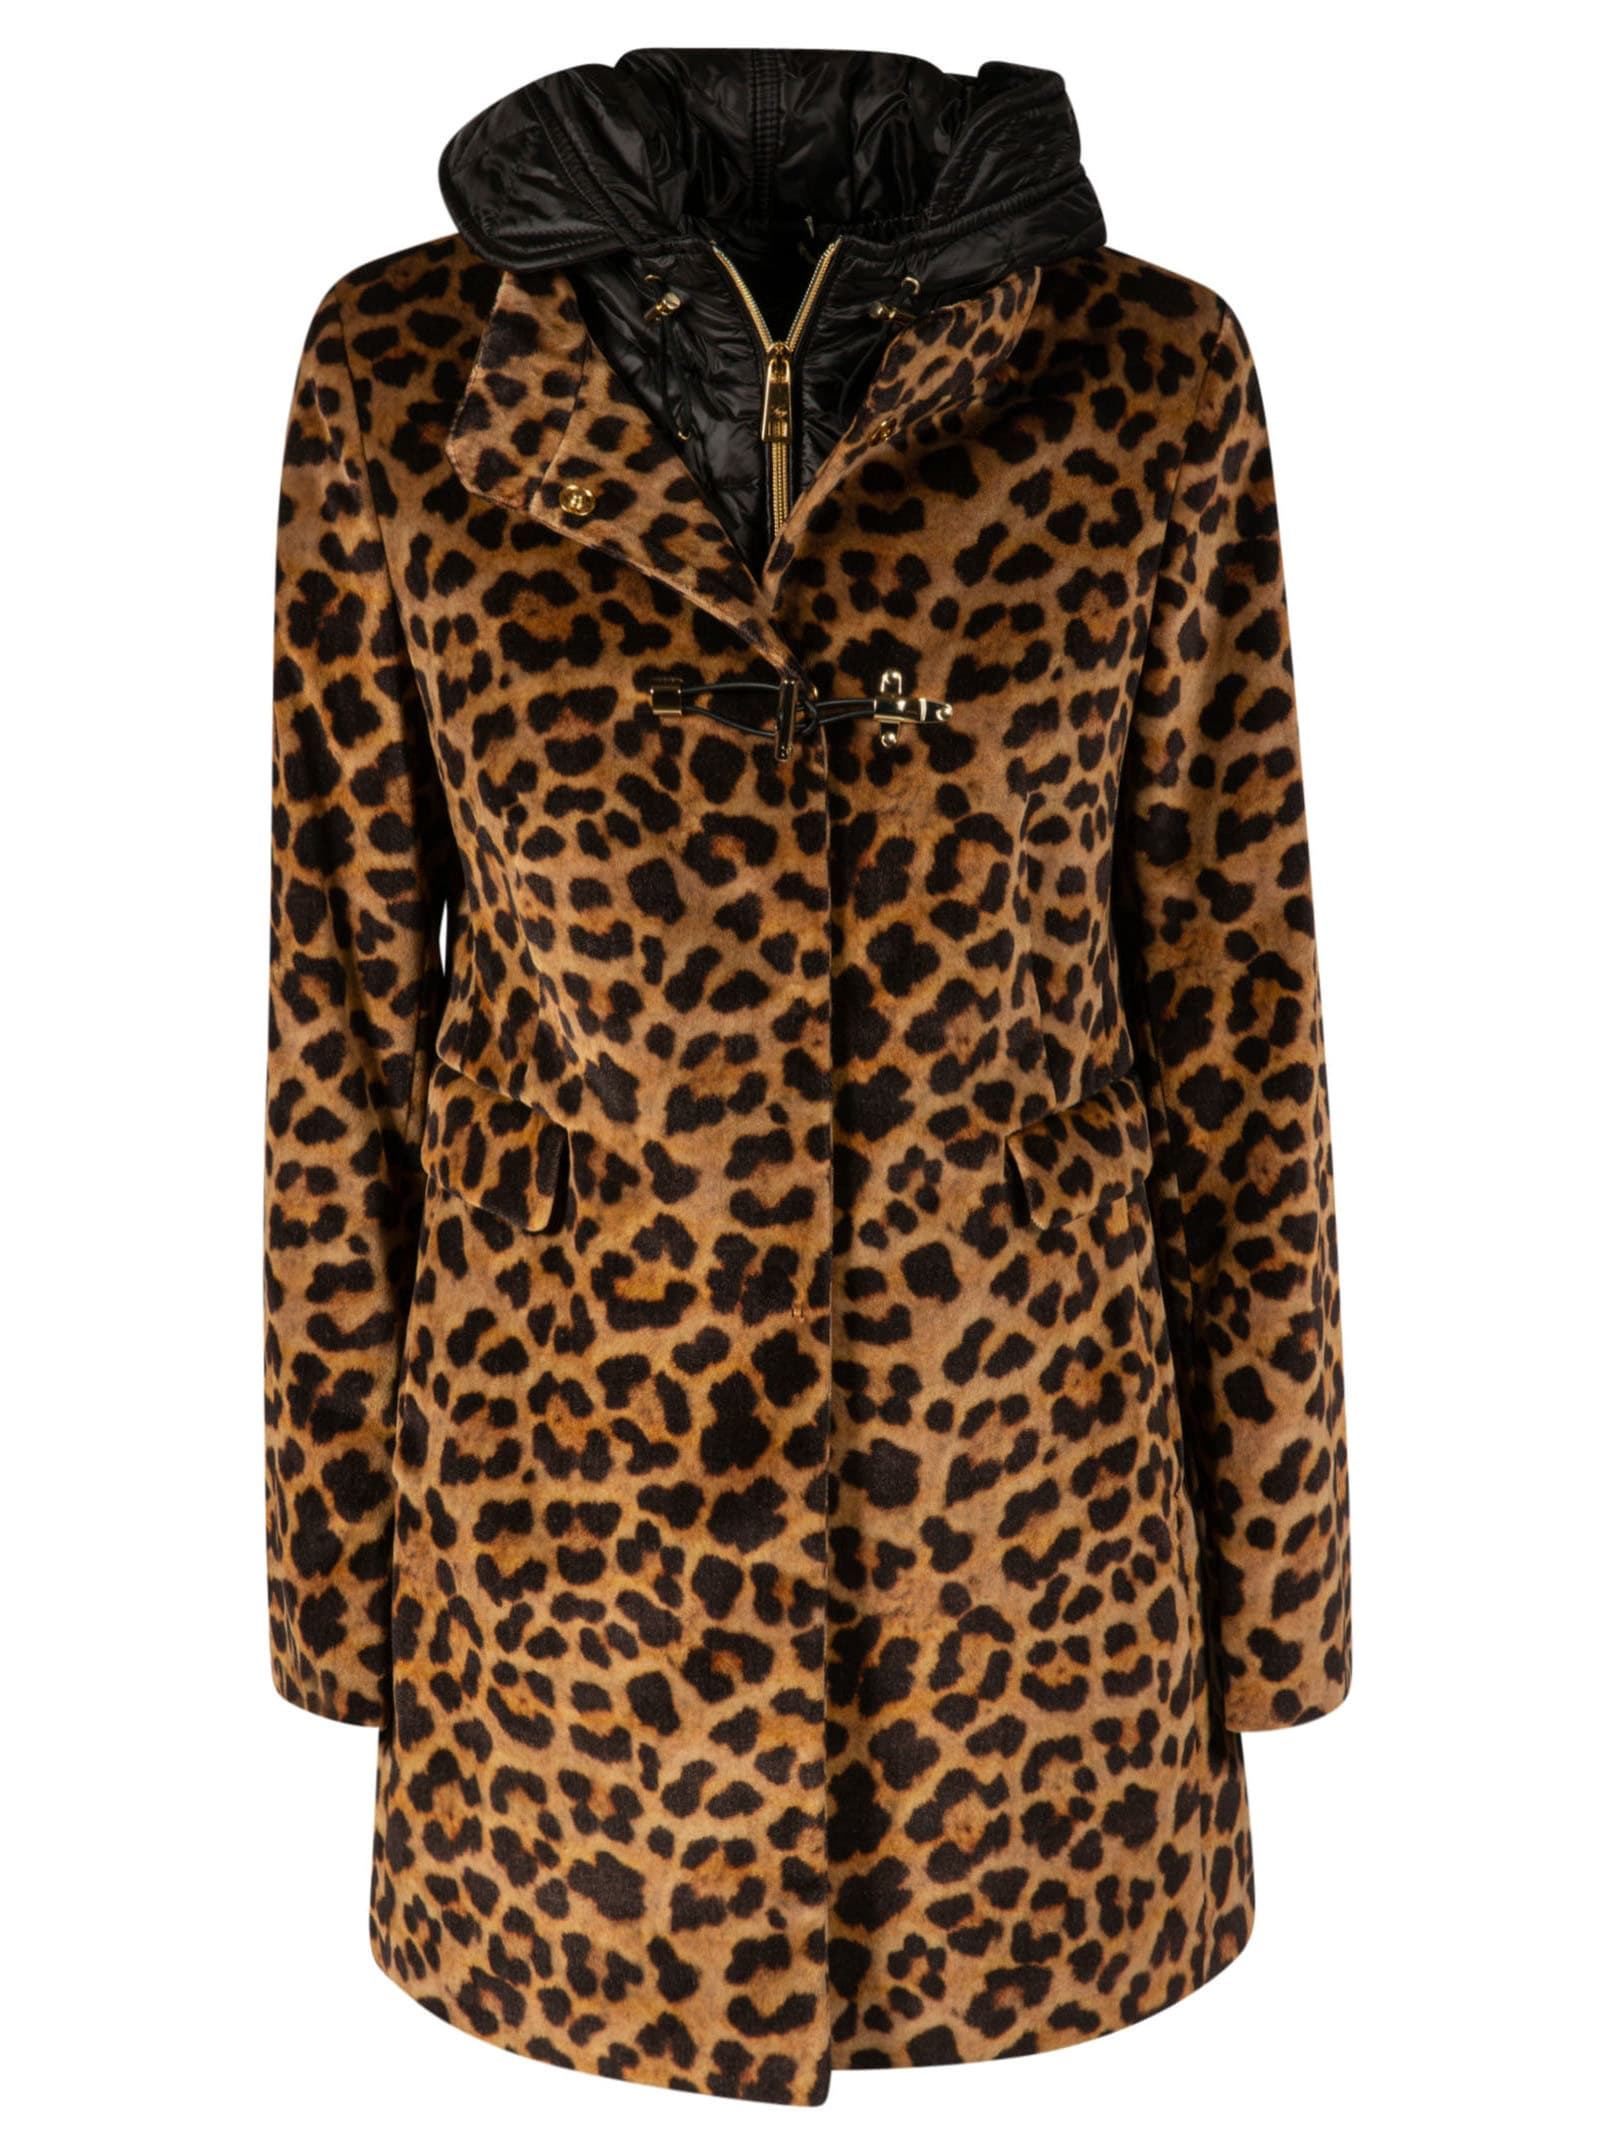 Leopard Print Parka from FayComposition: 100% Cotton